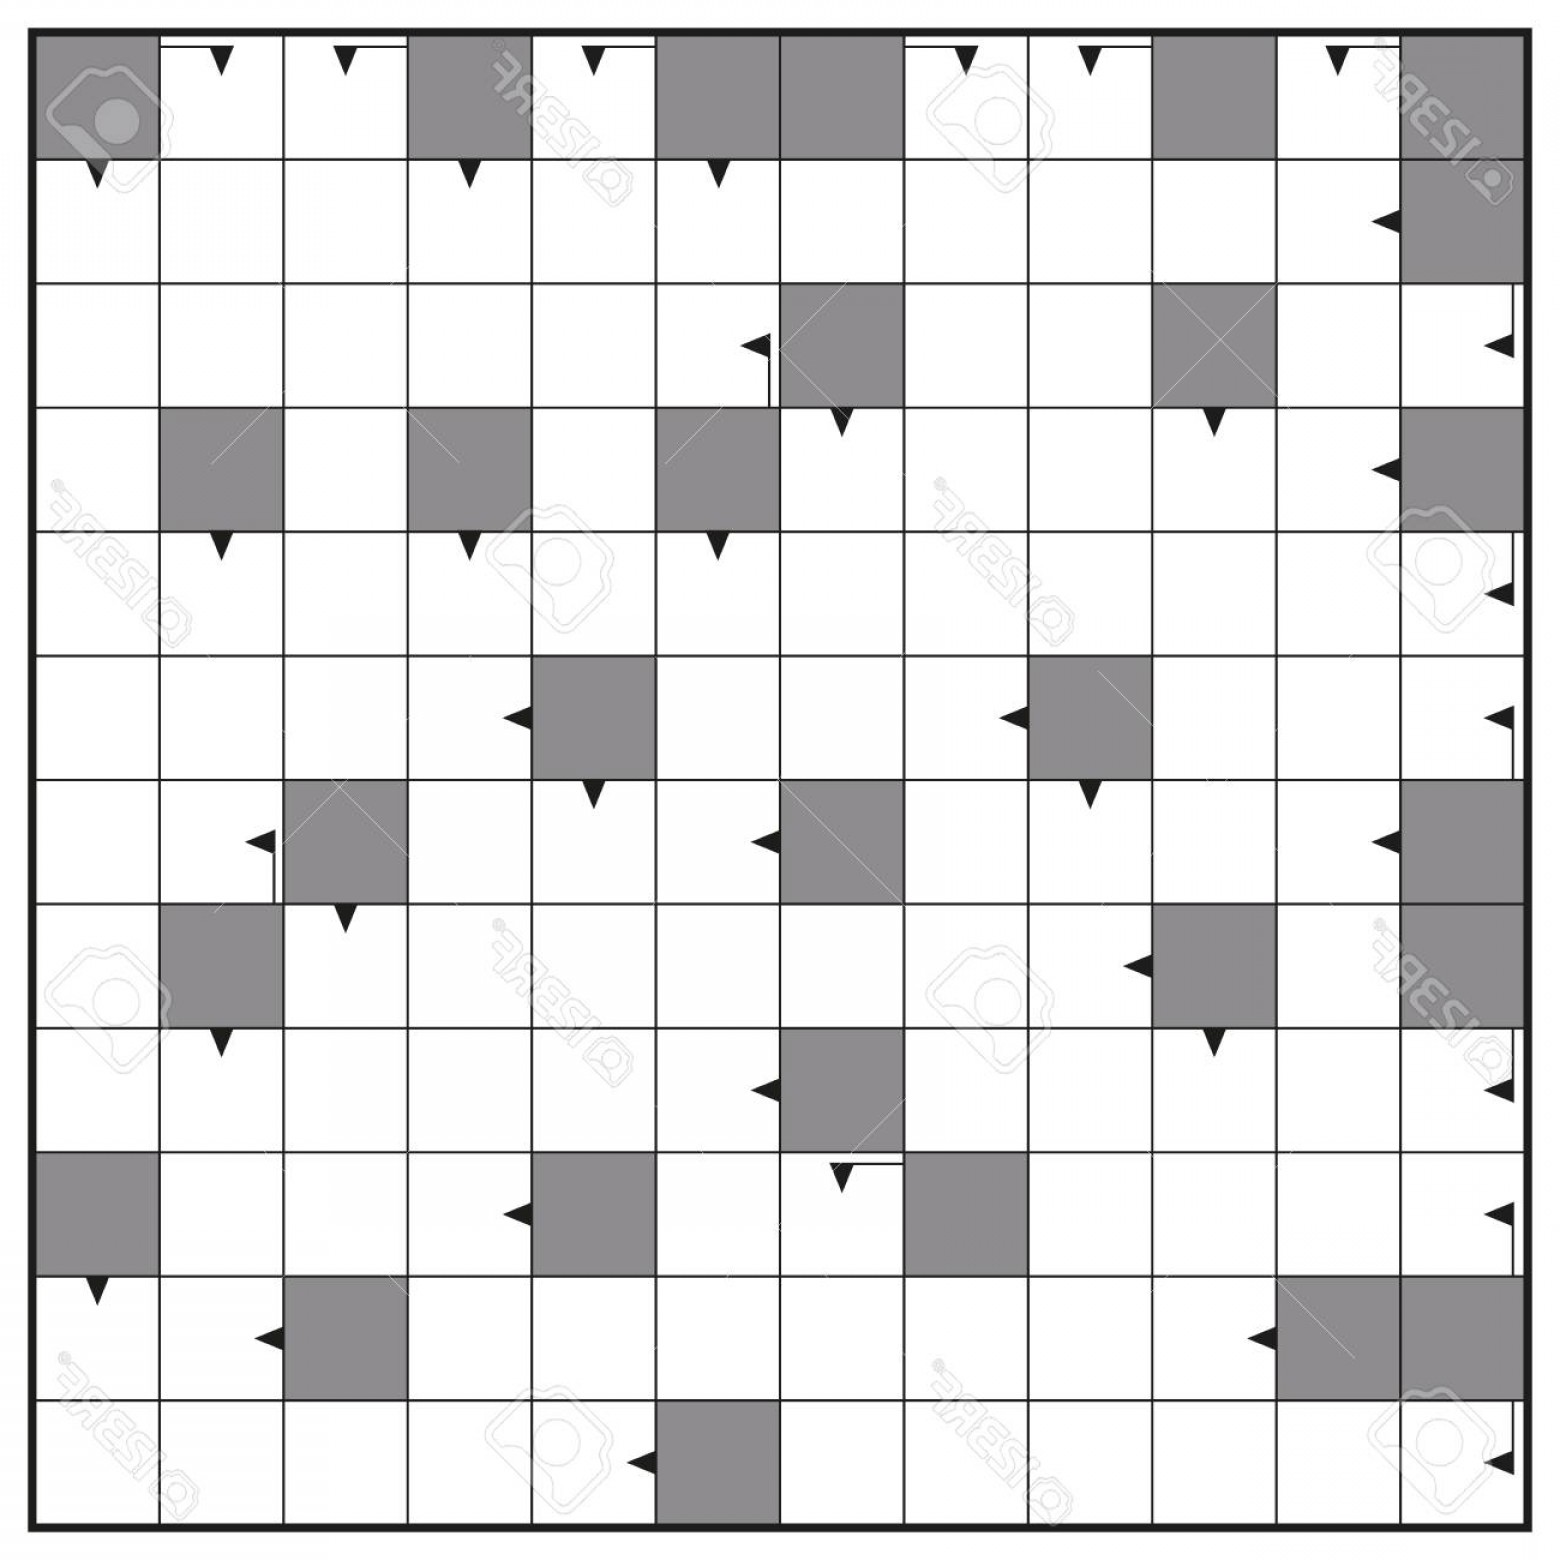 Puzzle In Vector Format: Photostock Vector Crossword Blank Crossword Puzzle Pattern Square Format Template To Insert Any Words With One To Twel